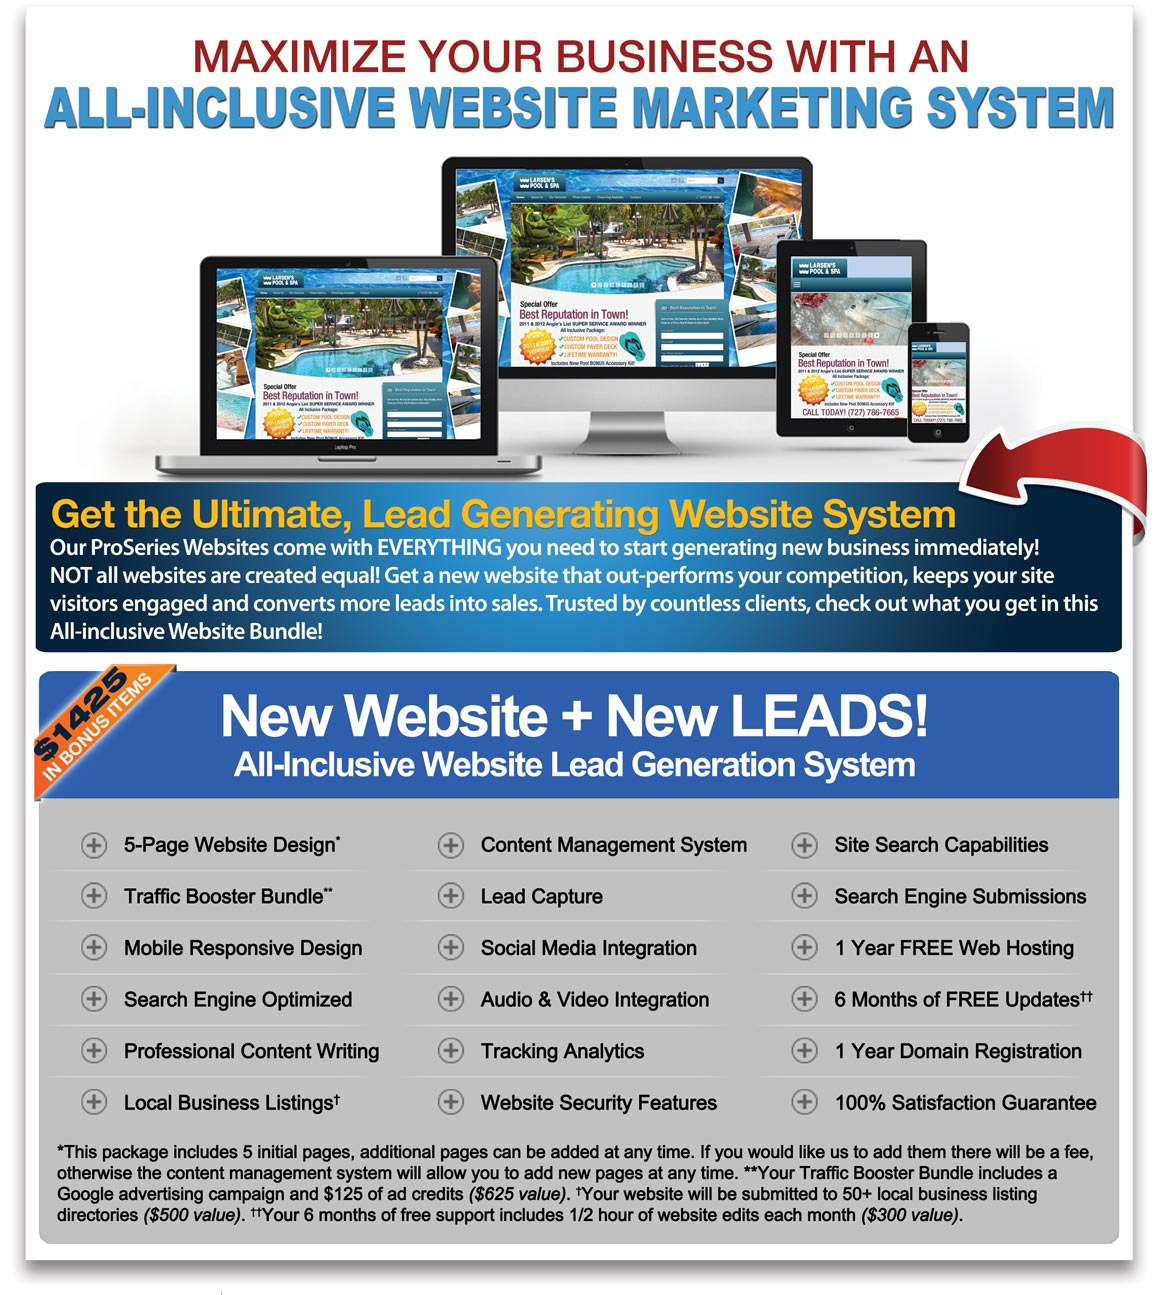 all-inclusive website lead generation bundle